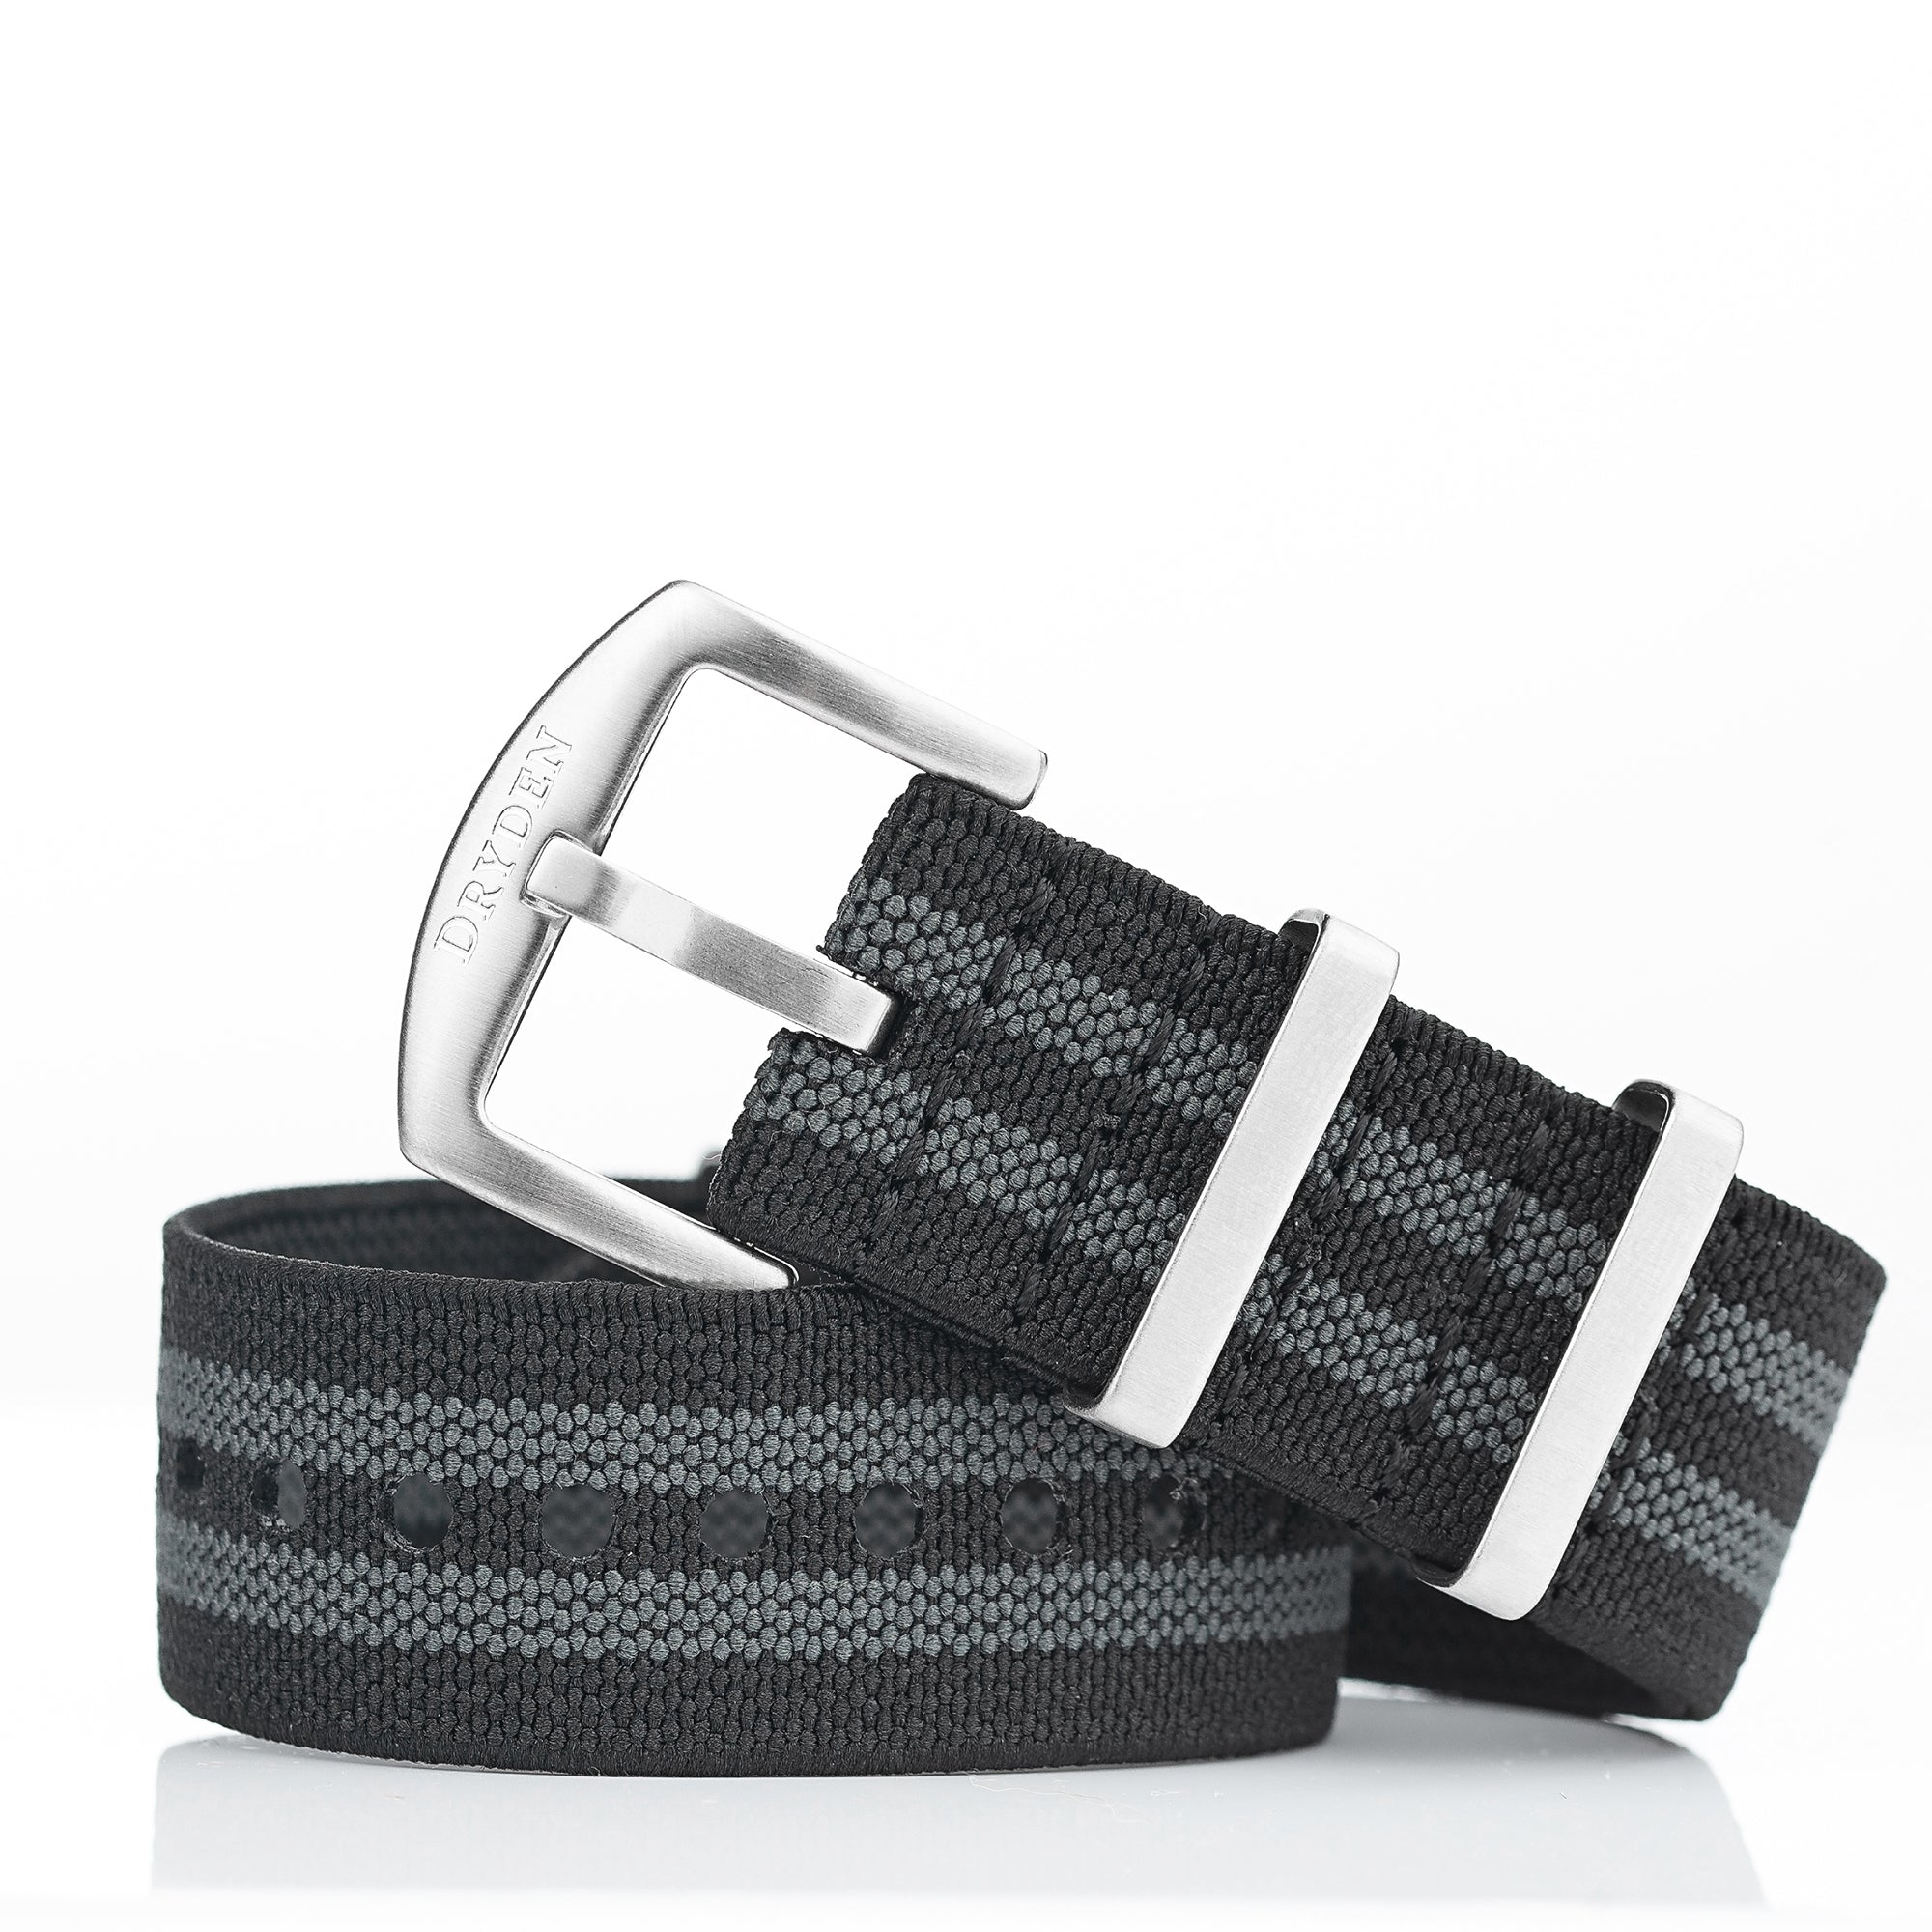 22mm Woven Elastic Nylon Watch Strap -Black / Grey (Bond)